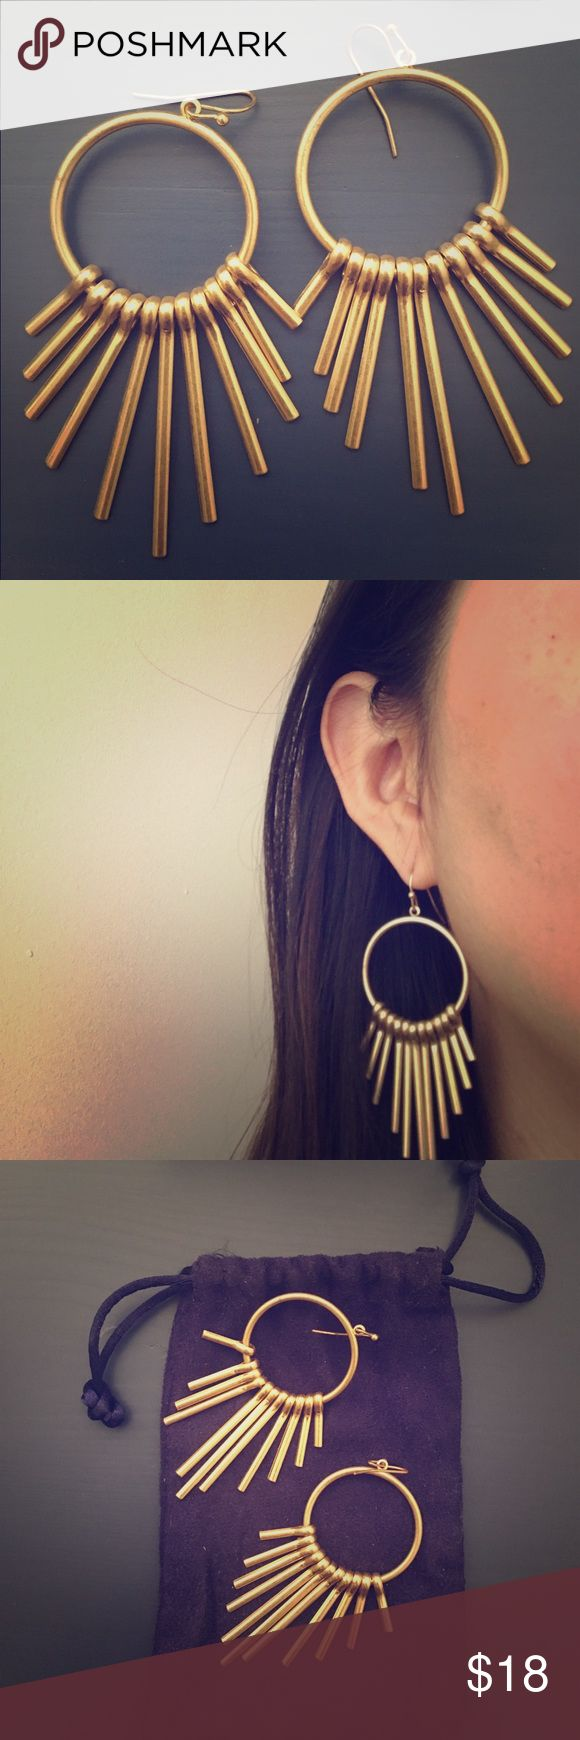 BaubleBar | Gold-plated Hoop Drop Fringe Earrings Bought these gorgeous gold-plated earrings at Nordstrom | BaubleBar and wore them only once to a party! Earrings are in mint condition. Intersecting chains and a delicate fringe are a luxe take on a delicate silhouette. Style with side-parted hair and solid hues for an ultra-chic look. Jewelry Earrings